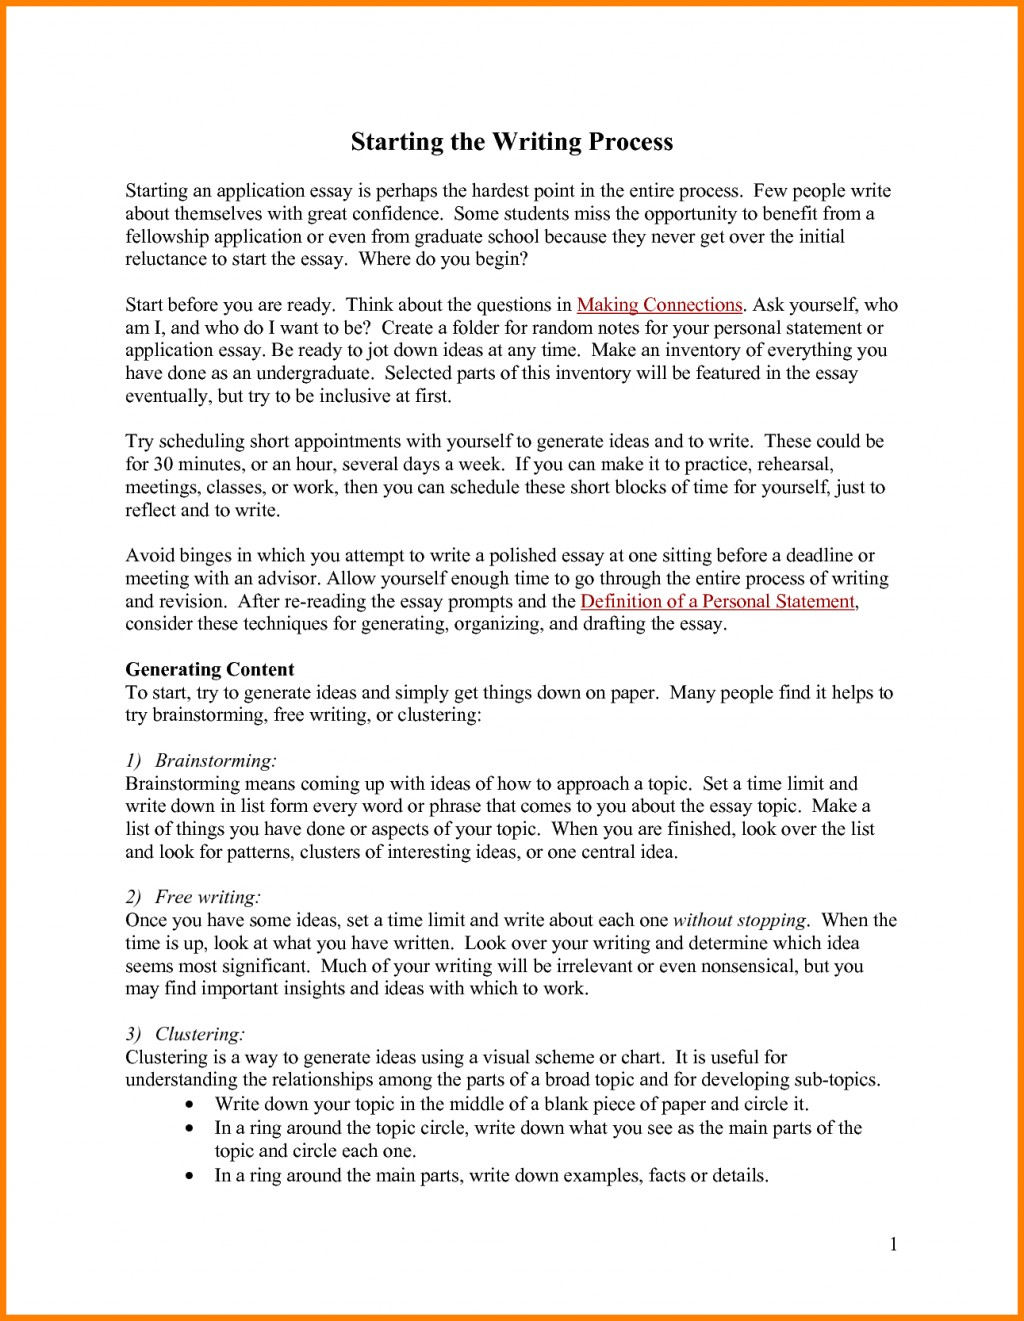 008 How To Start An Essay About Myself Example Off Yourself Unique For College A Job Large